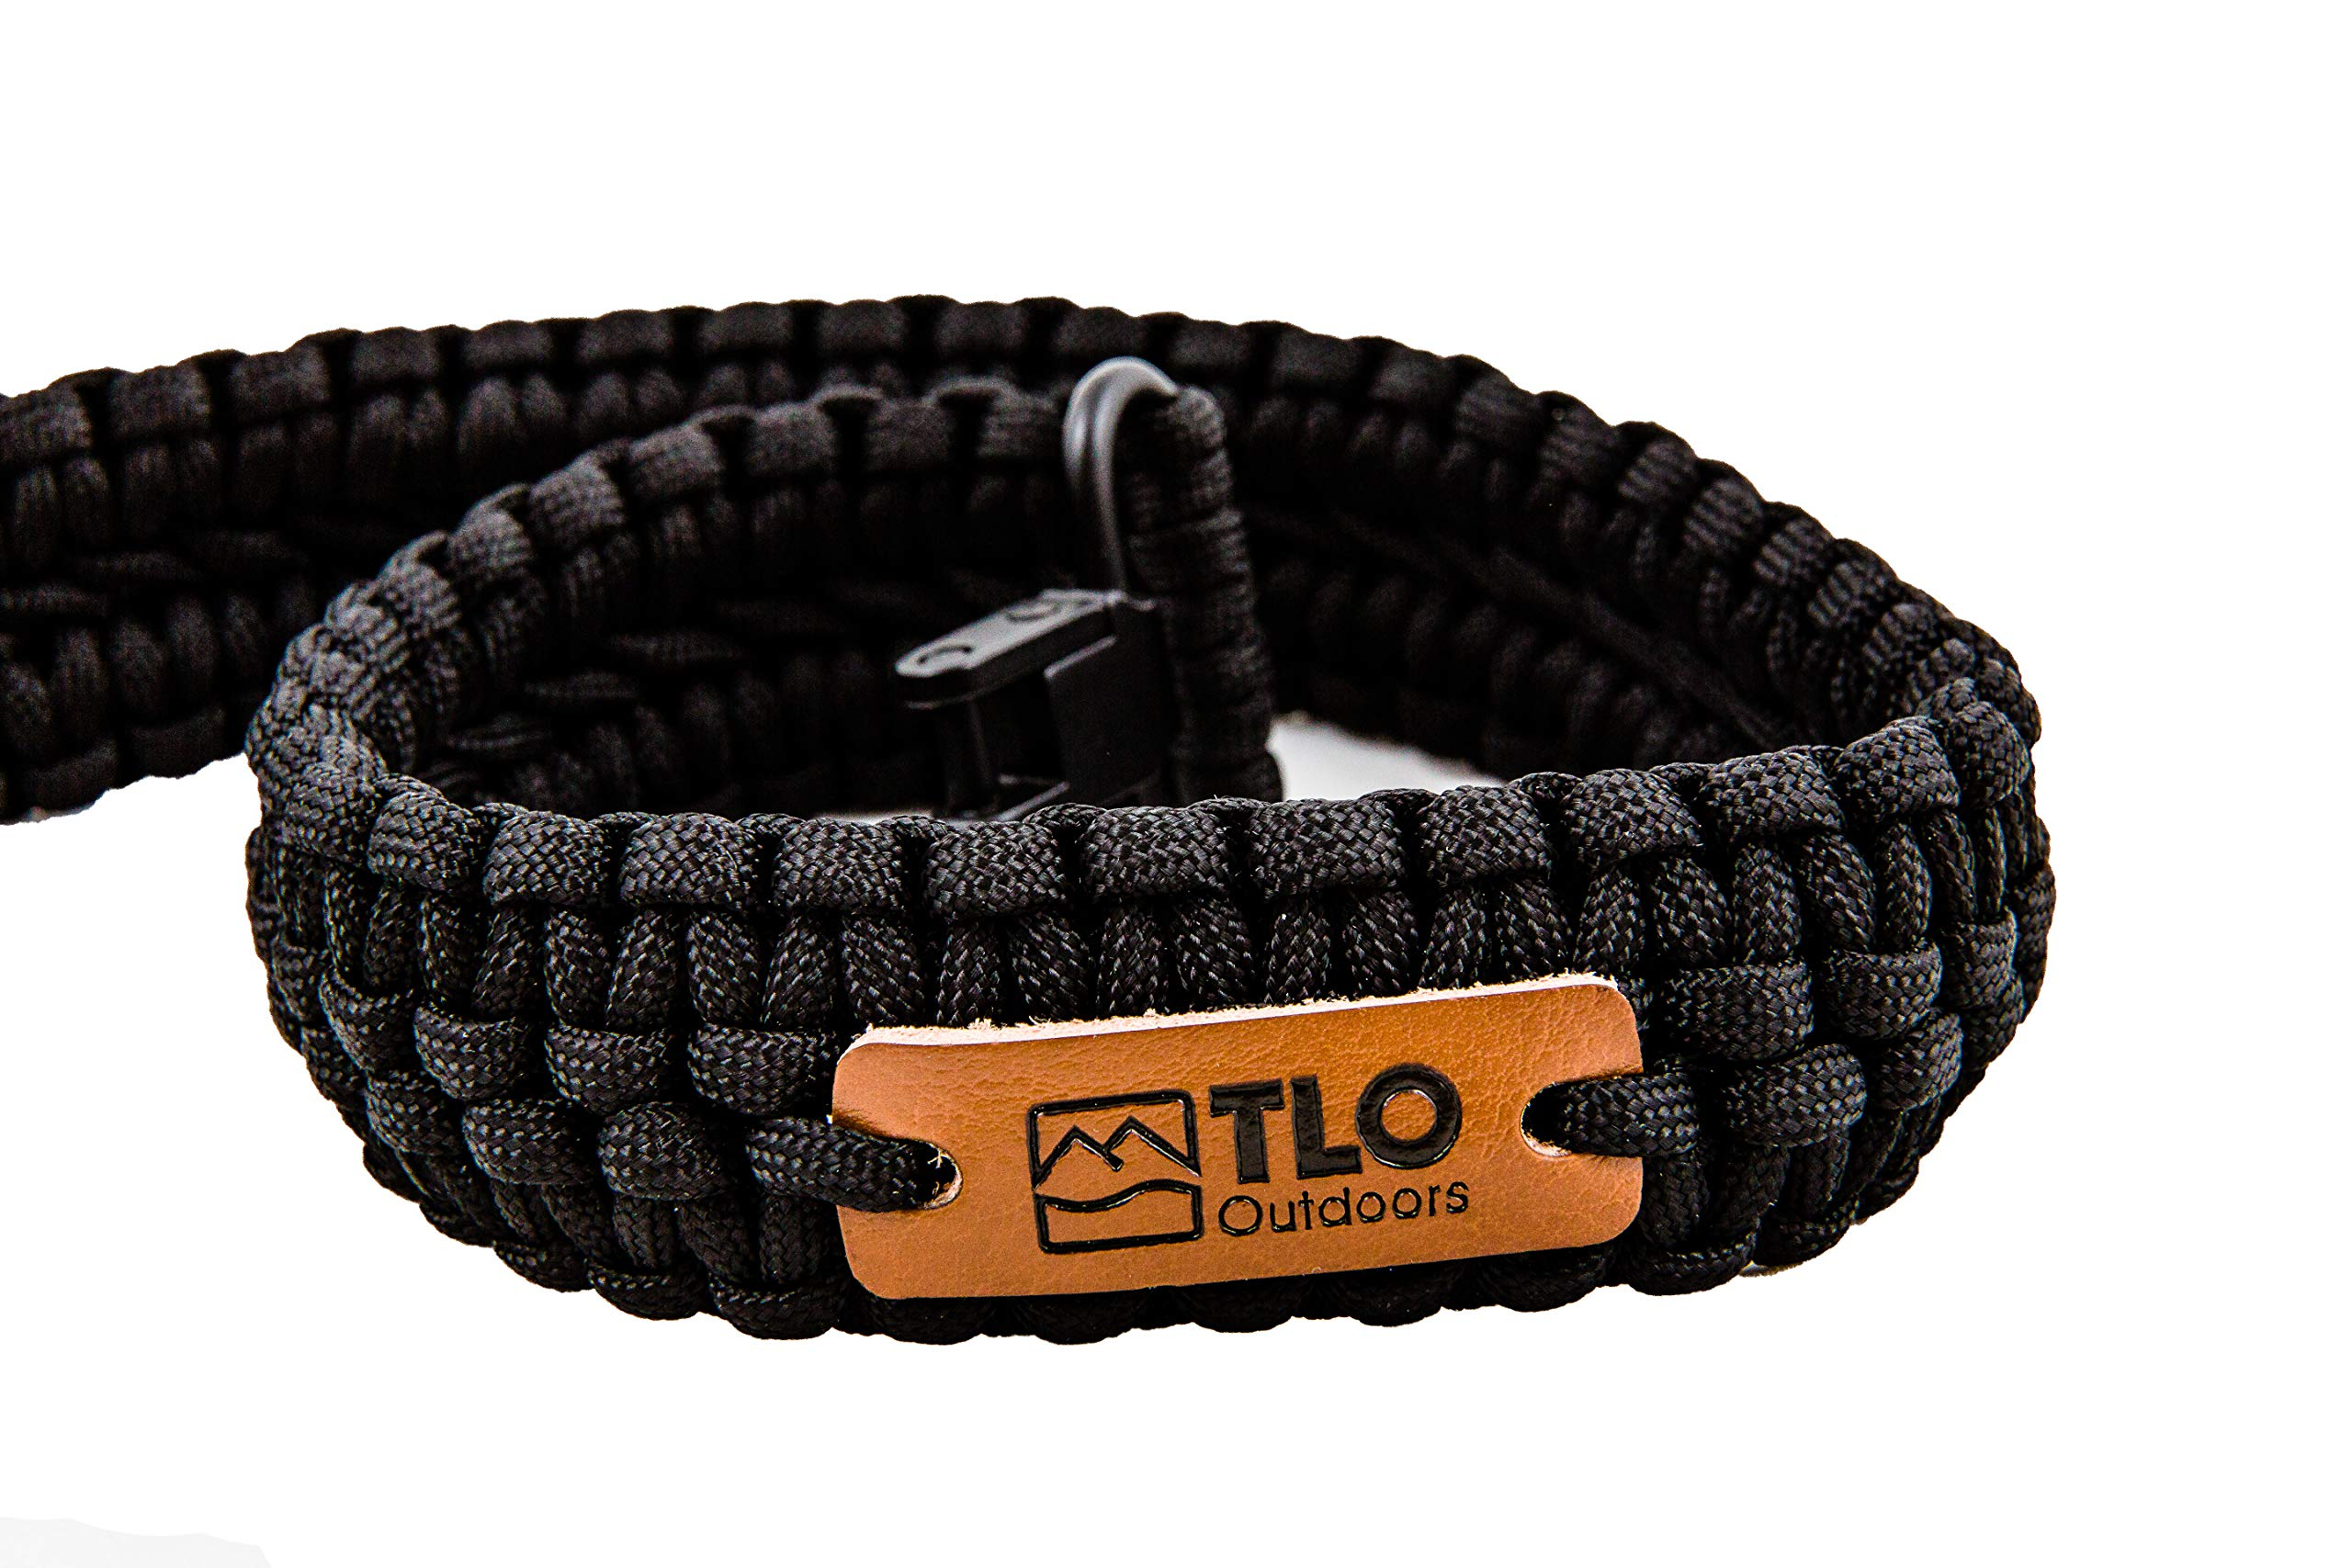 TLO Outdoors Paracord Gun Sling - Adjustable 2-Point Paracord Sling Rifle, Shotgun Crossbows (550 Rated Nylon, Kernmantle Paracord, Extra Wide, Black) by TLO Outdoors